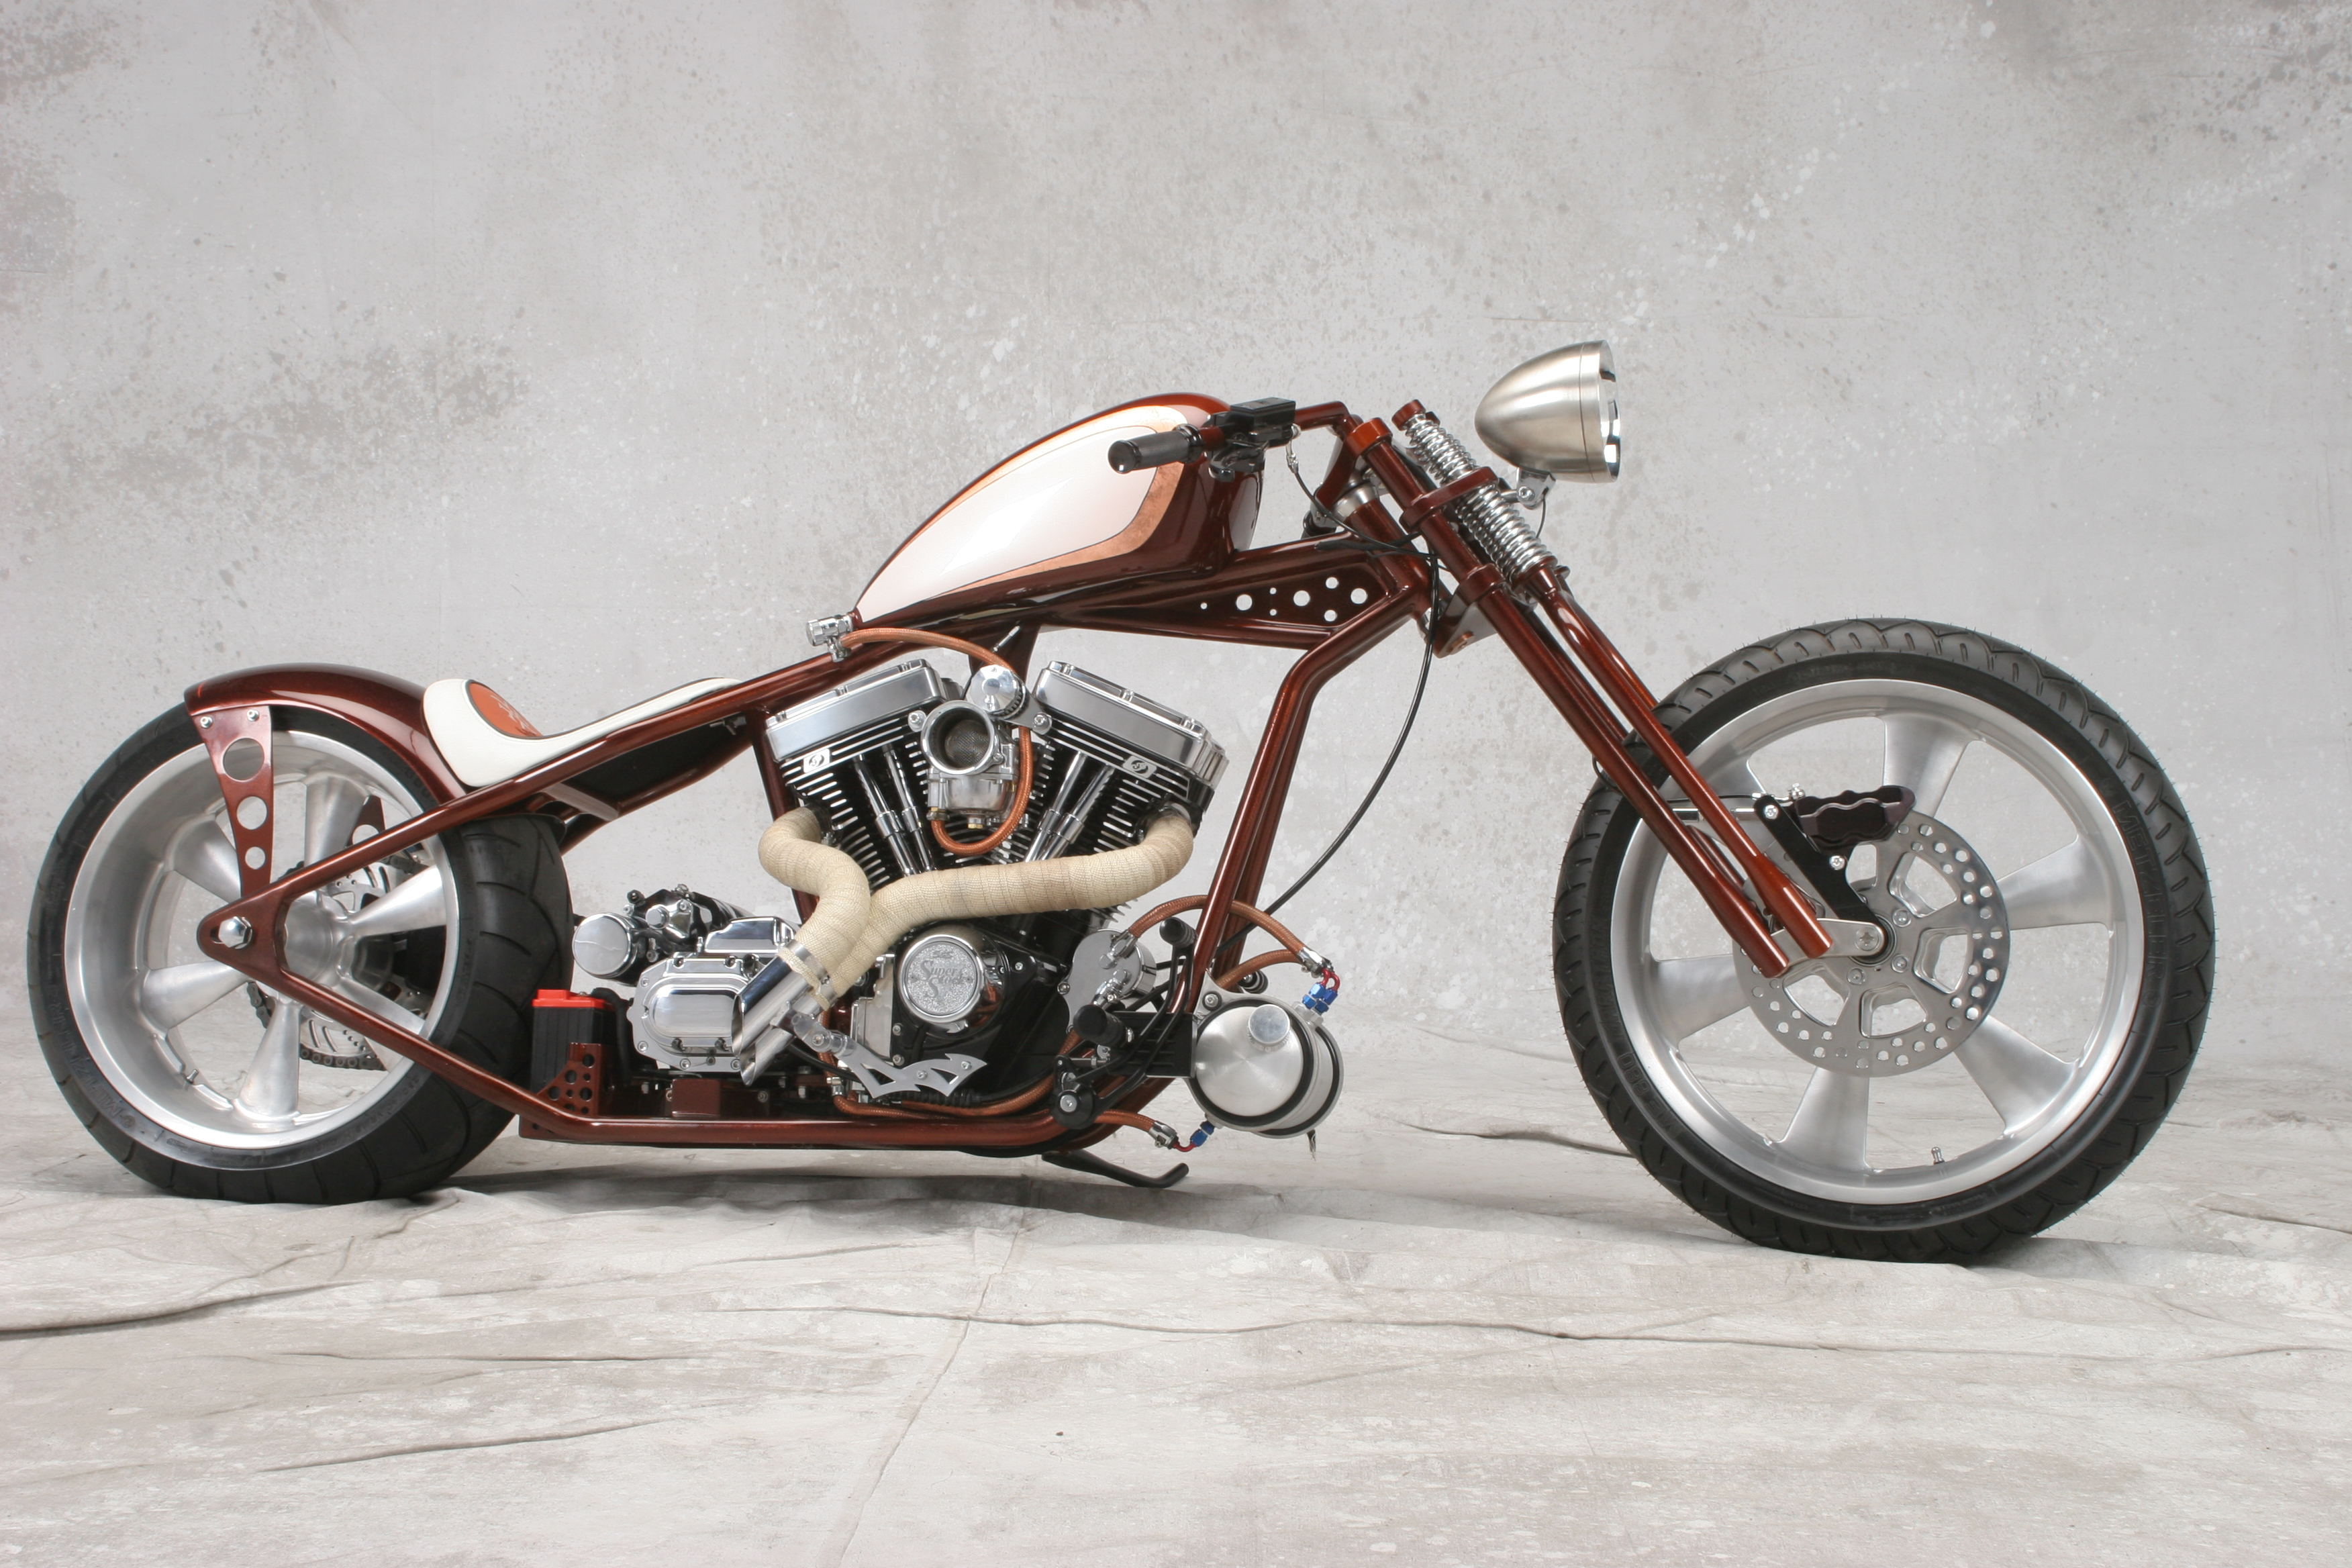 Look at this altoghether nice bike we tell all your friends about this bad boy!